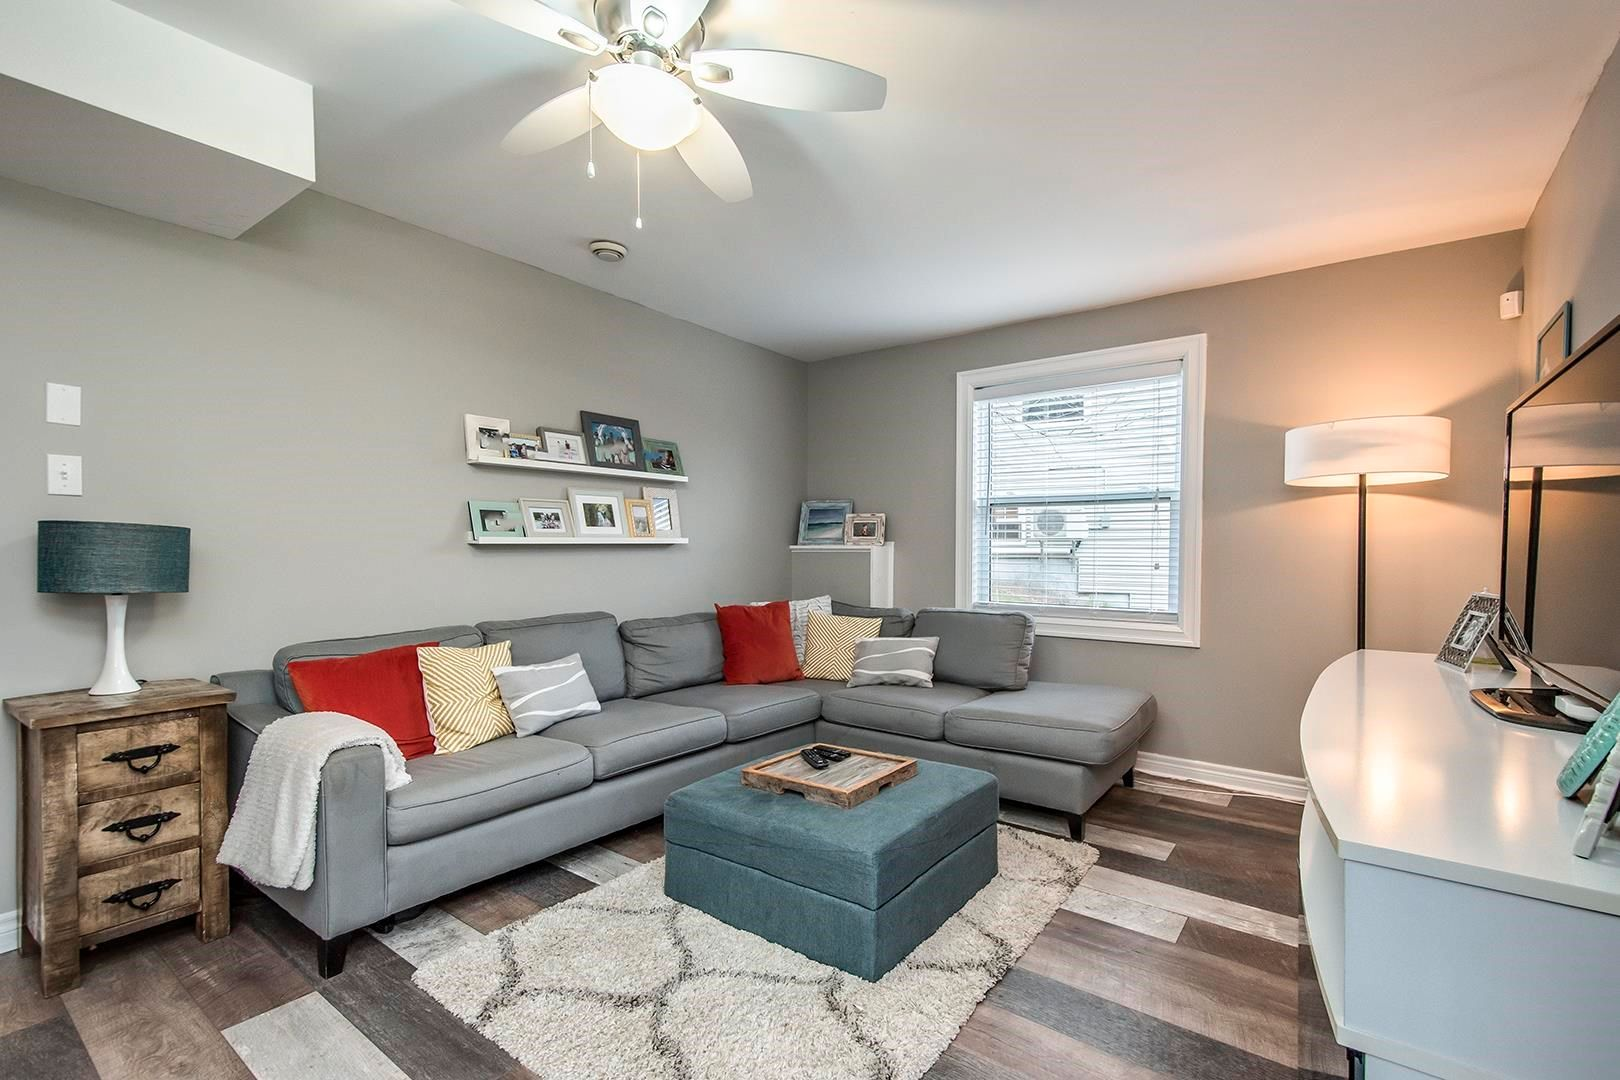 Photo 26: Photos: 64 Roy Crescent in Bedford: 20-Bedford Residential for sale (Halifax-Dartmouth)  : MLS®# 202110846